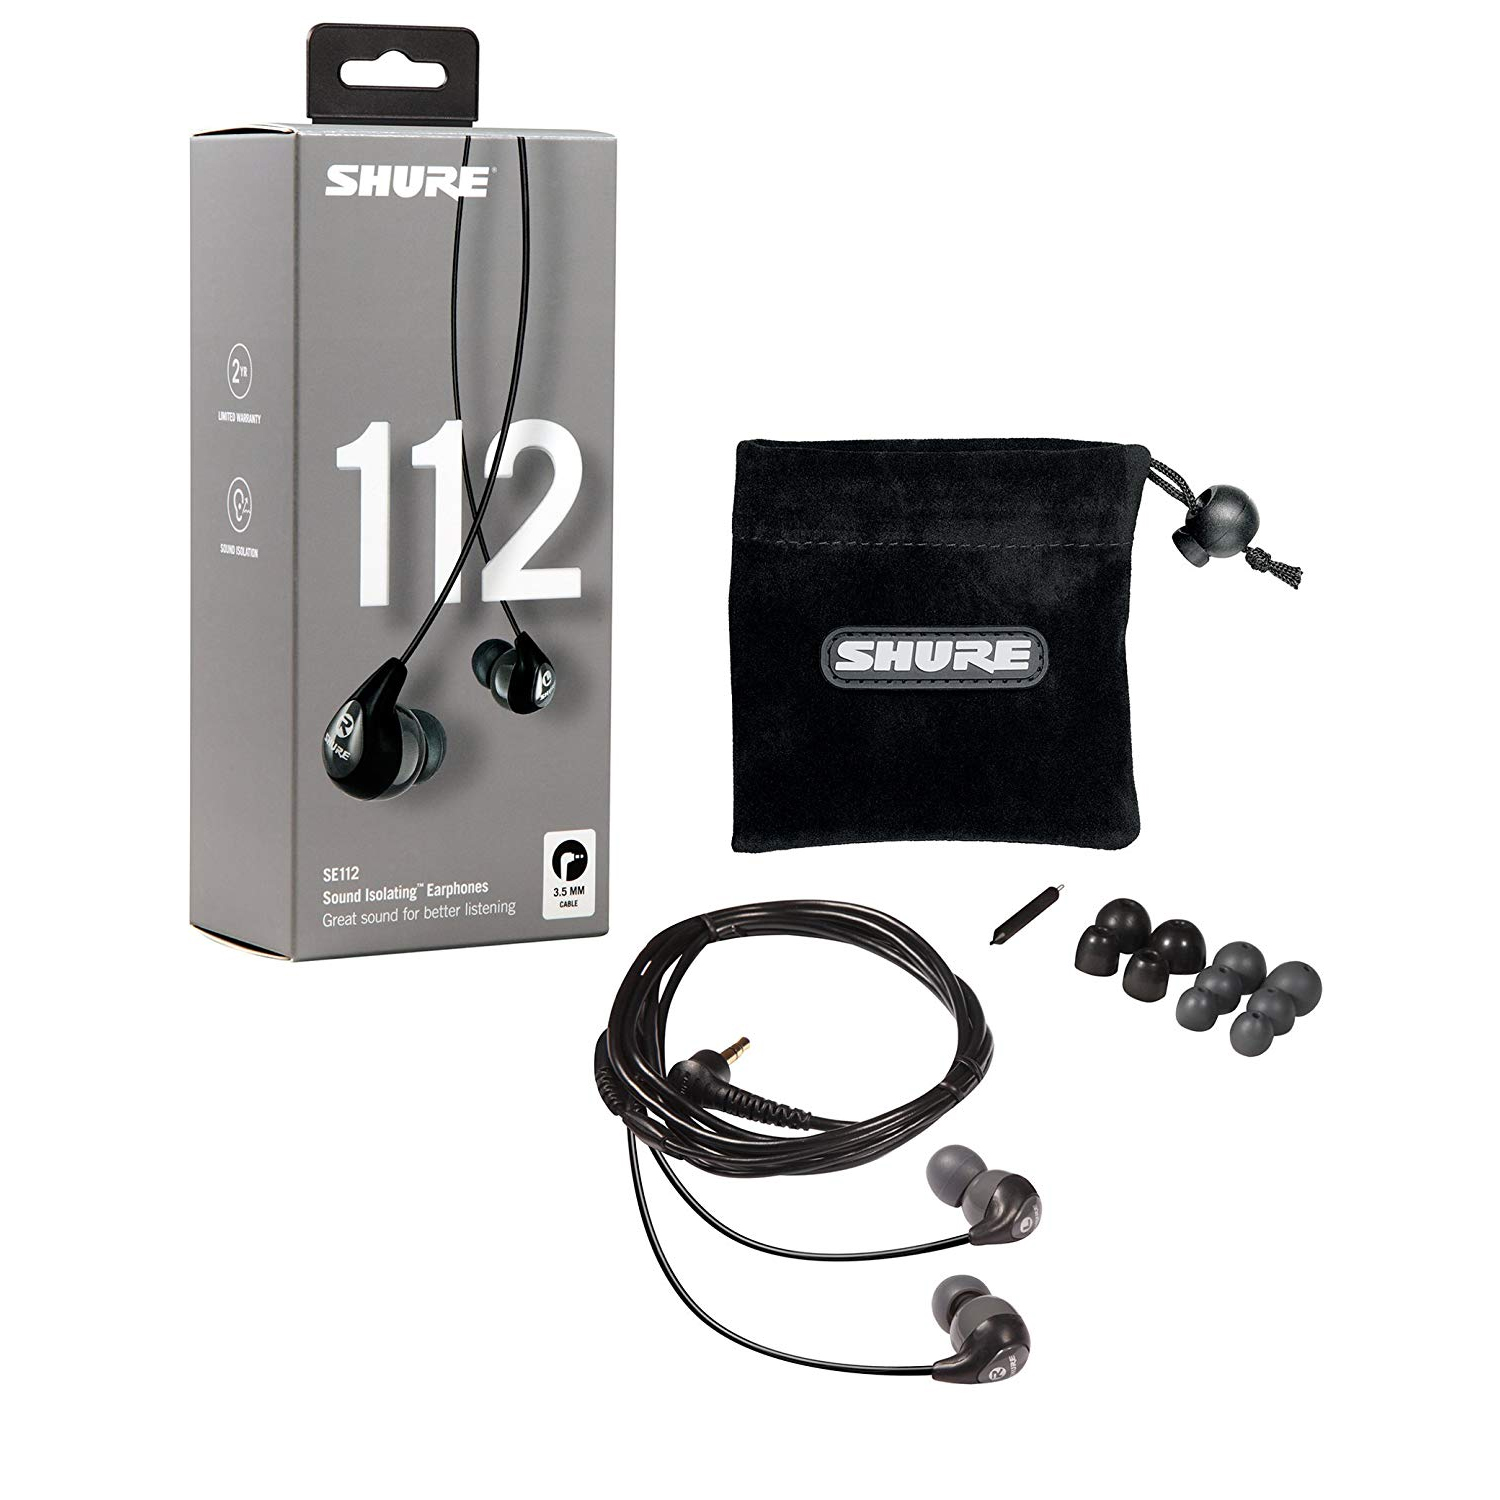 Shure SE112 Sound Isolating Earphones